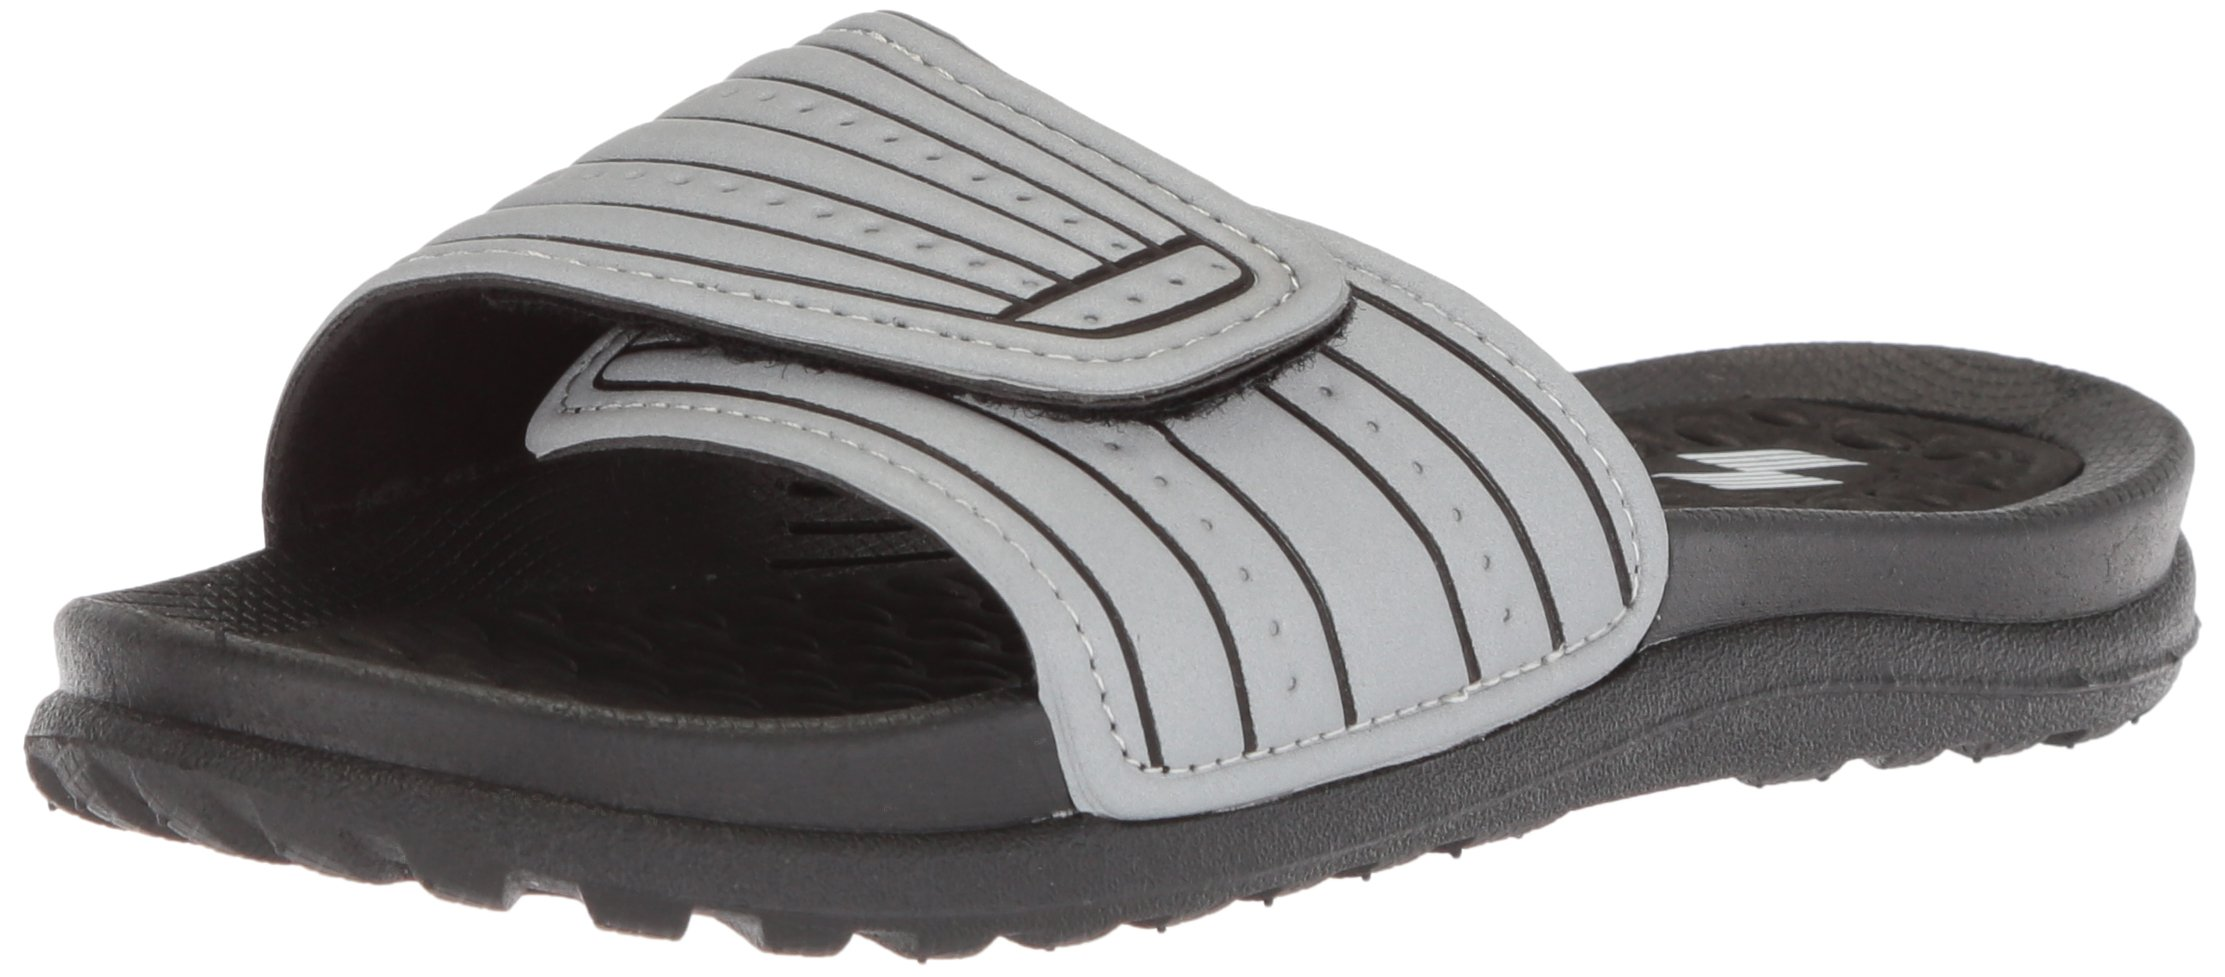 The Children's Place Boys' Slide Flat Sandal, Silver, Youth 4-5 Medium US Infant